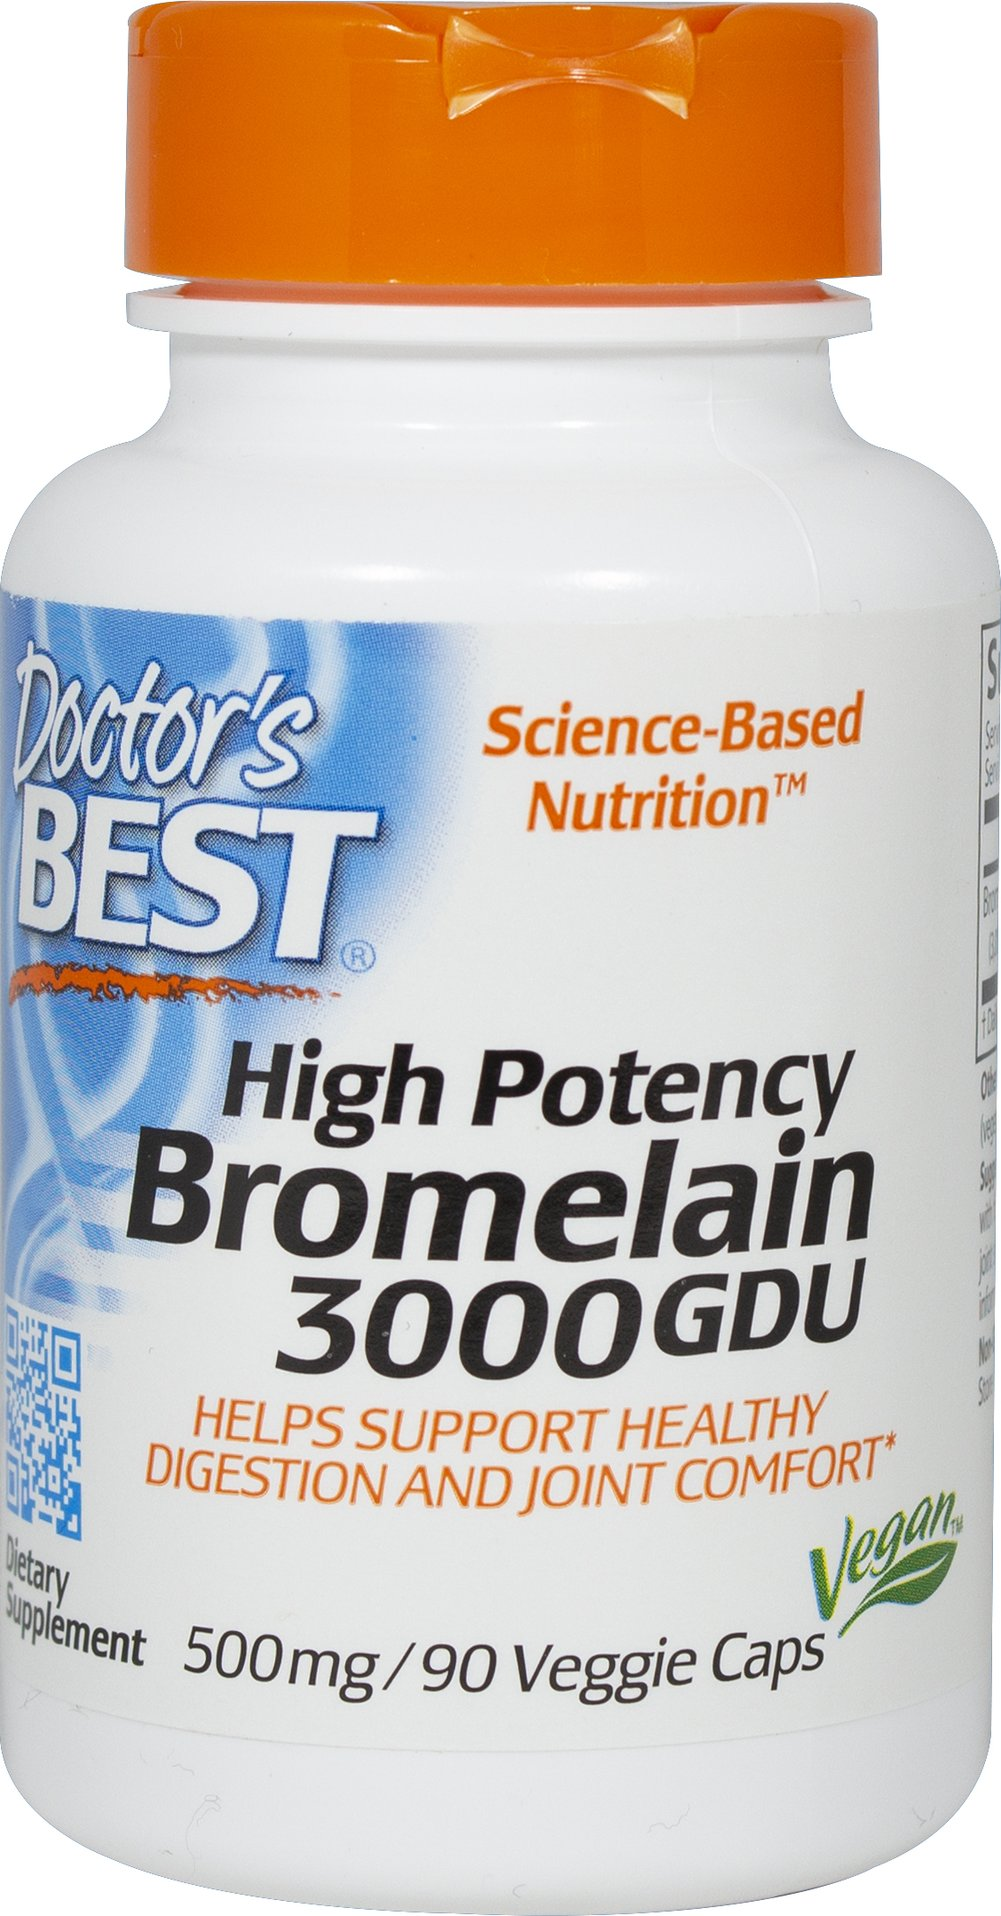 Best 3000 GDU Bromelain Thumbnail Alternate Bottle View